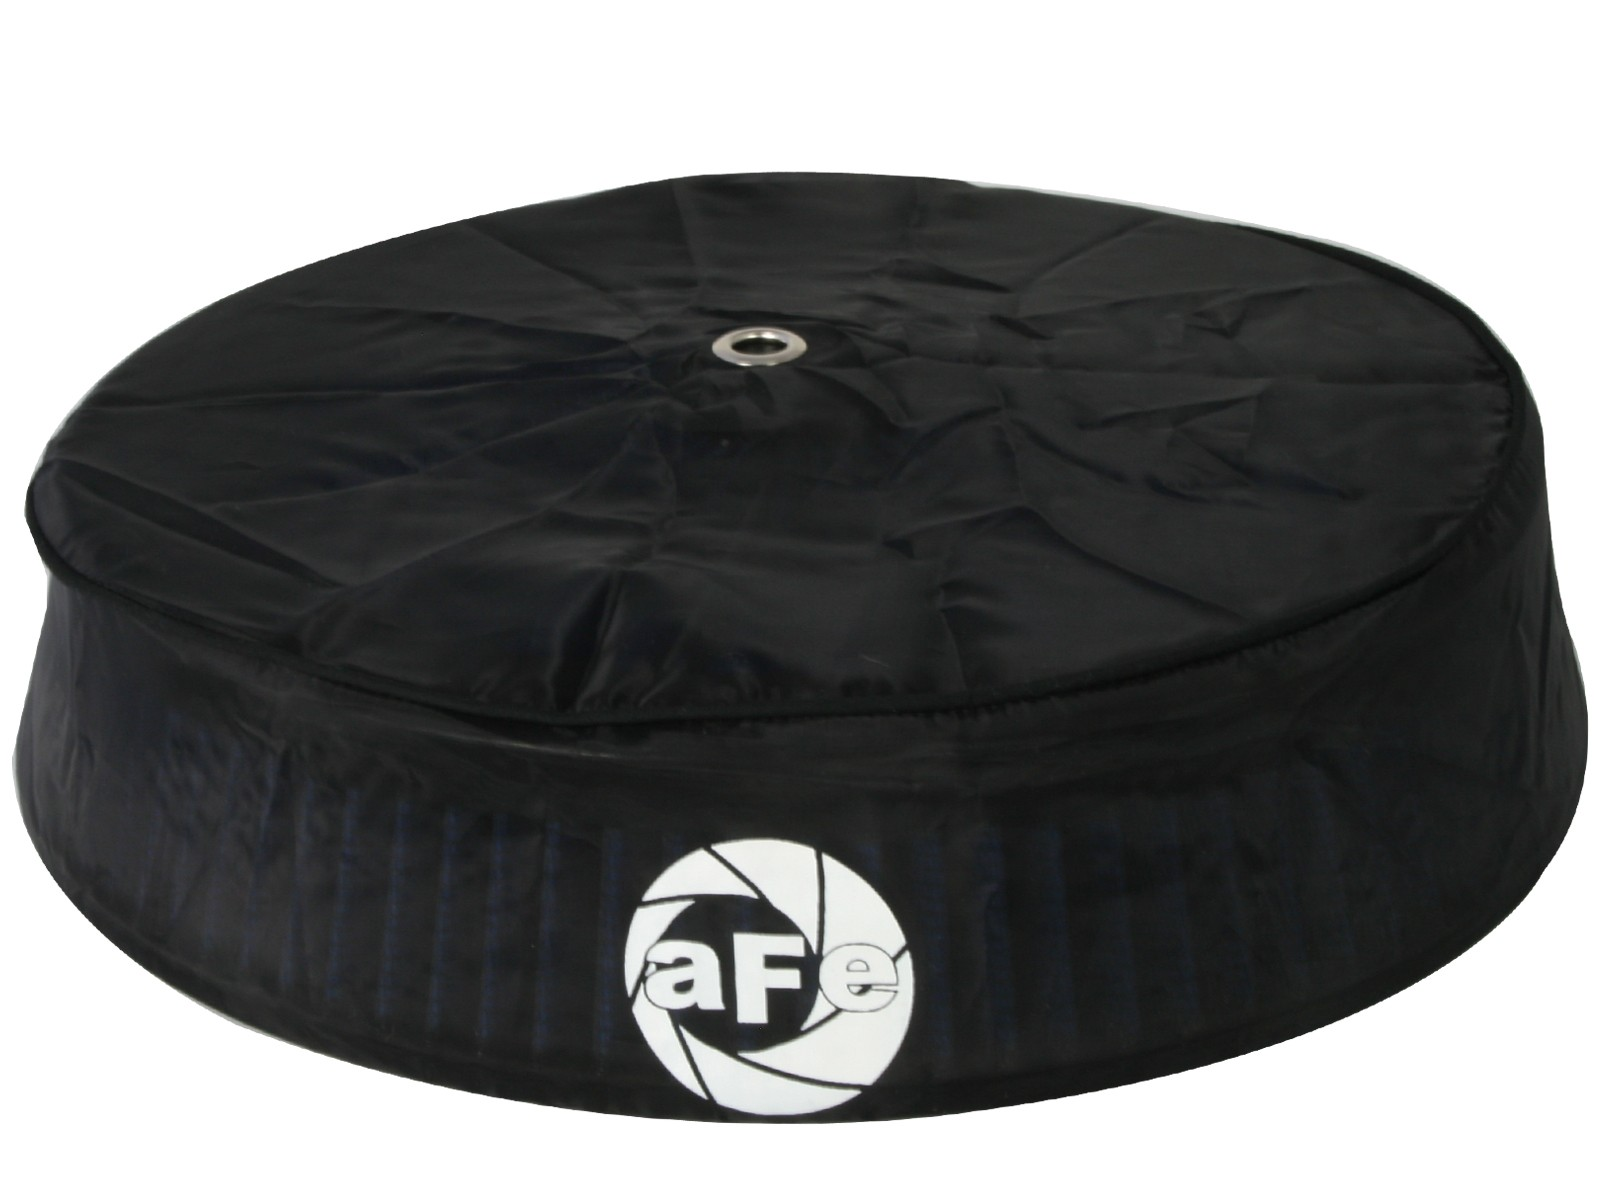 aFe POWER 28-10173 Magnum SHIELD Pre-Filters